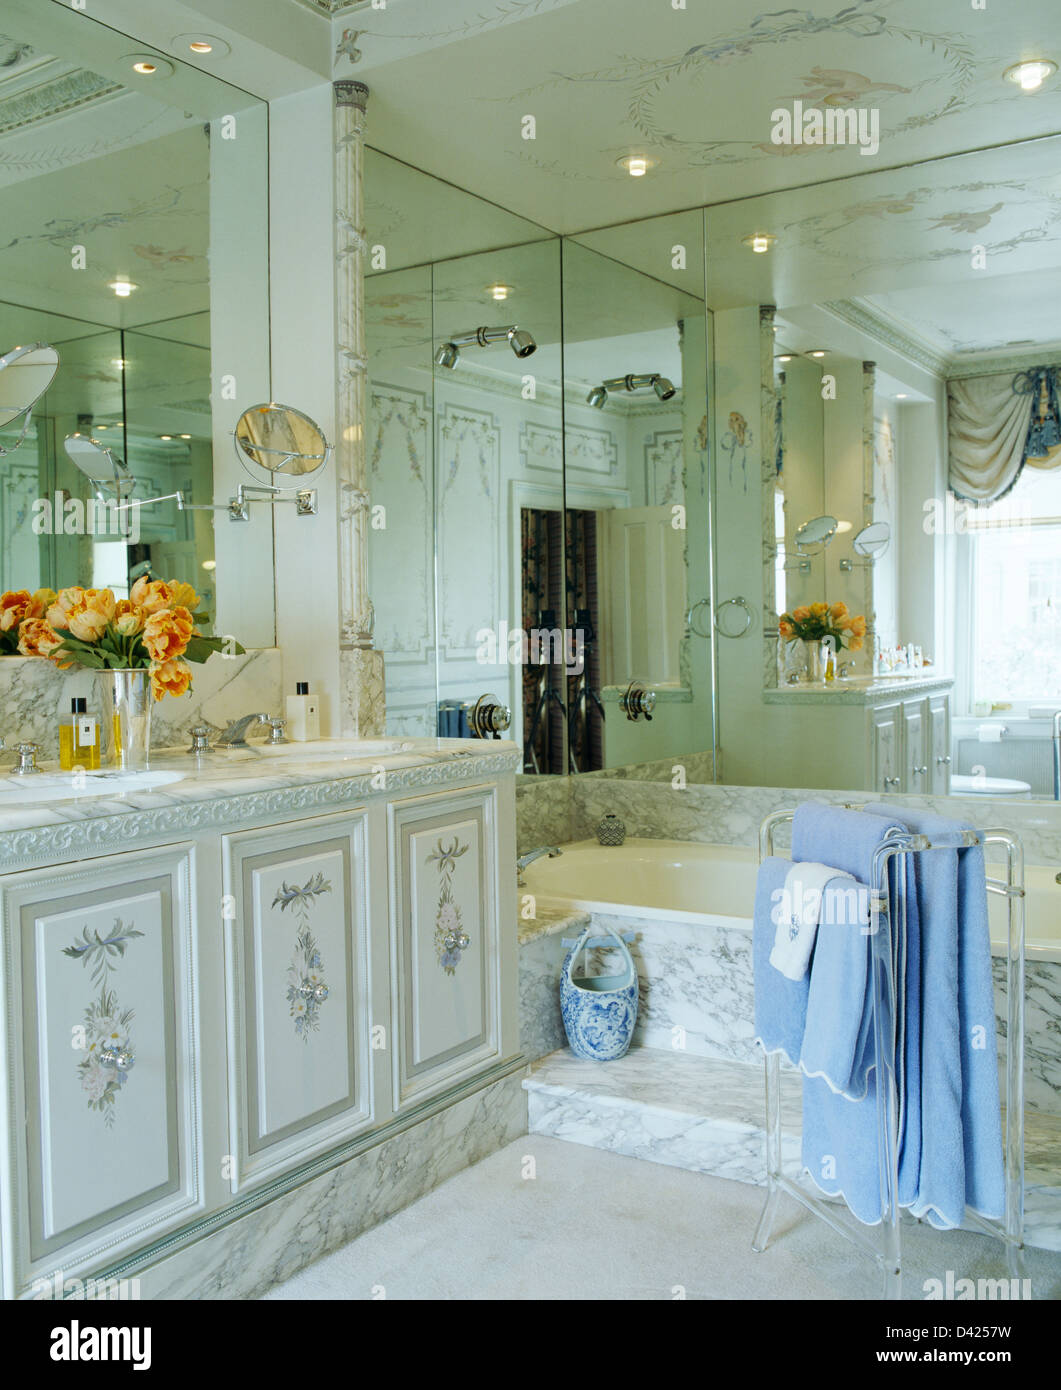 Mirrored walls and marble paneled bath in townhouse bathroom with ...